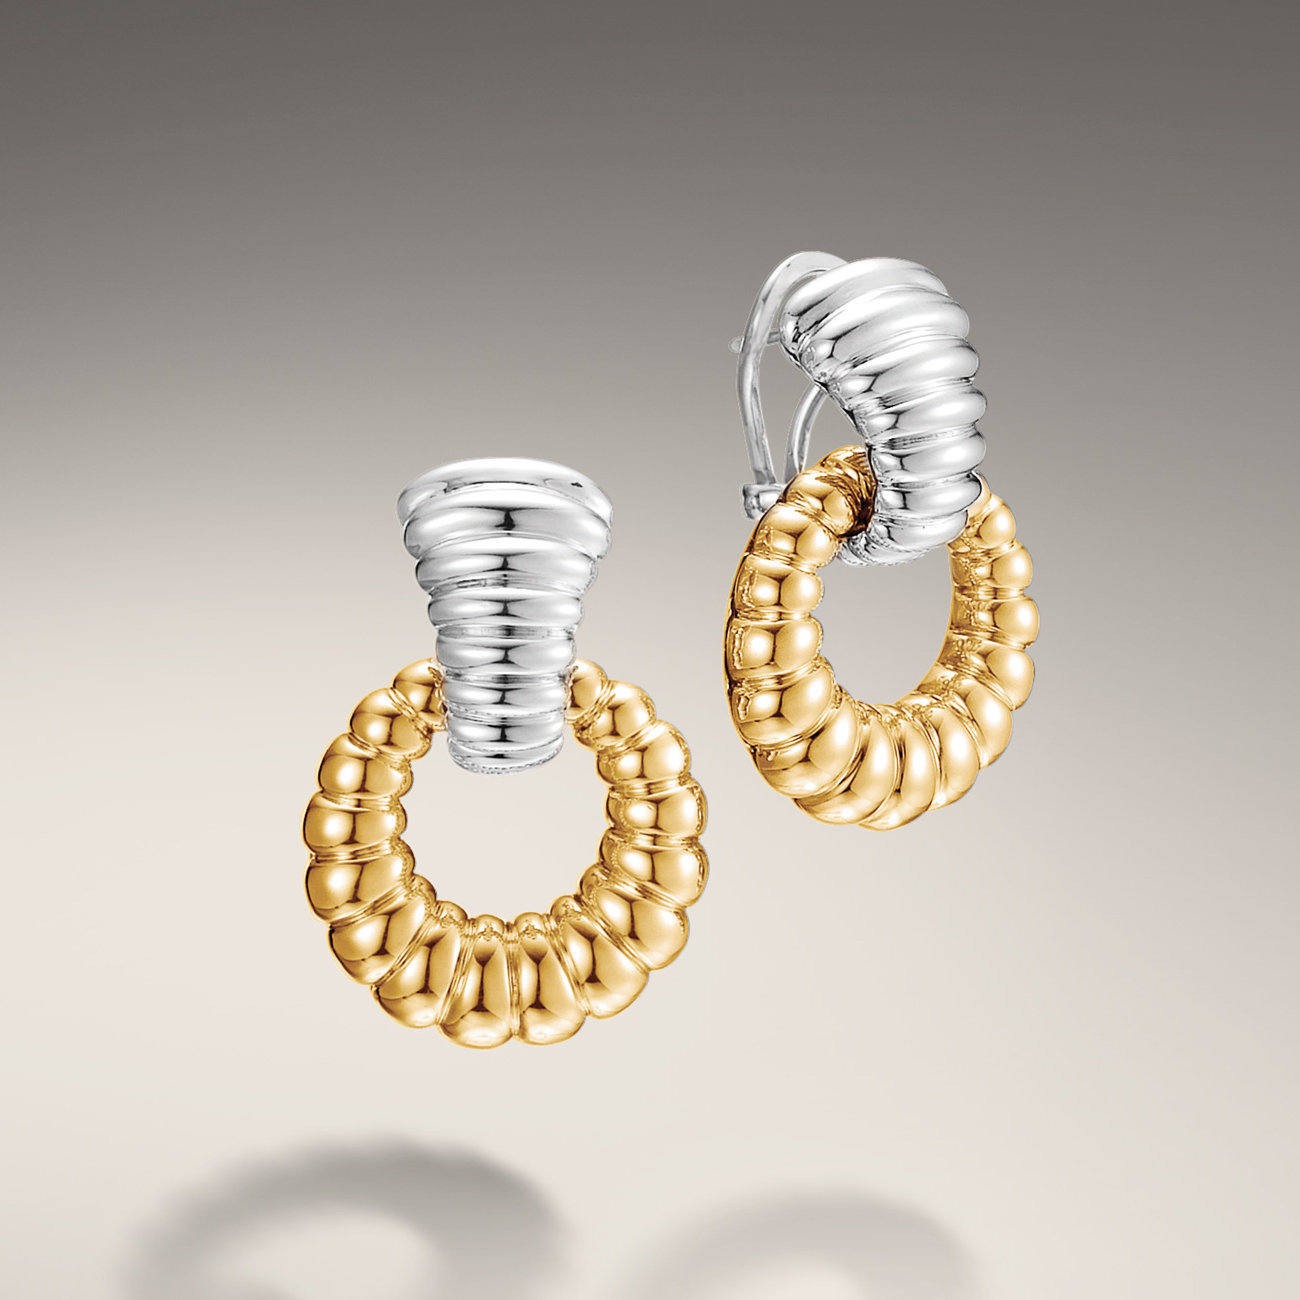 John Hardy doorknocker earrings. Silver and 18k yellow gold that really pops. From John Hardy's classic Bedeg Collection.  $1195